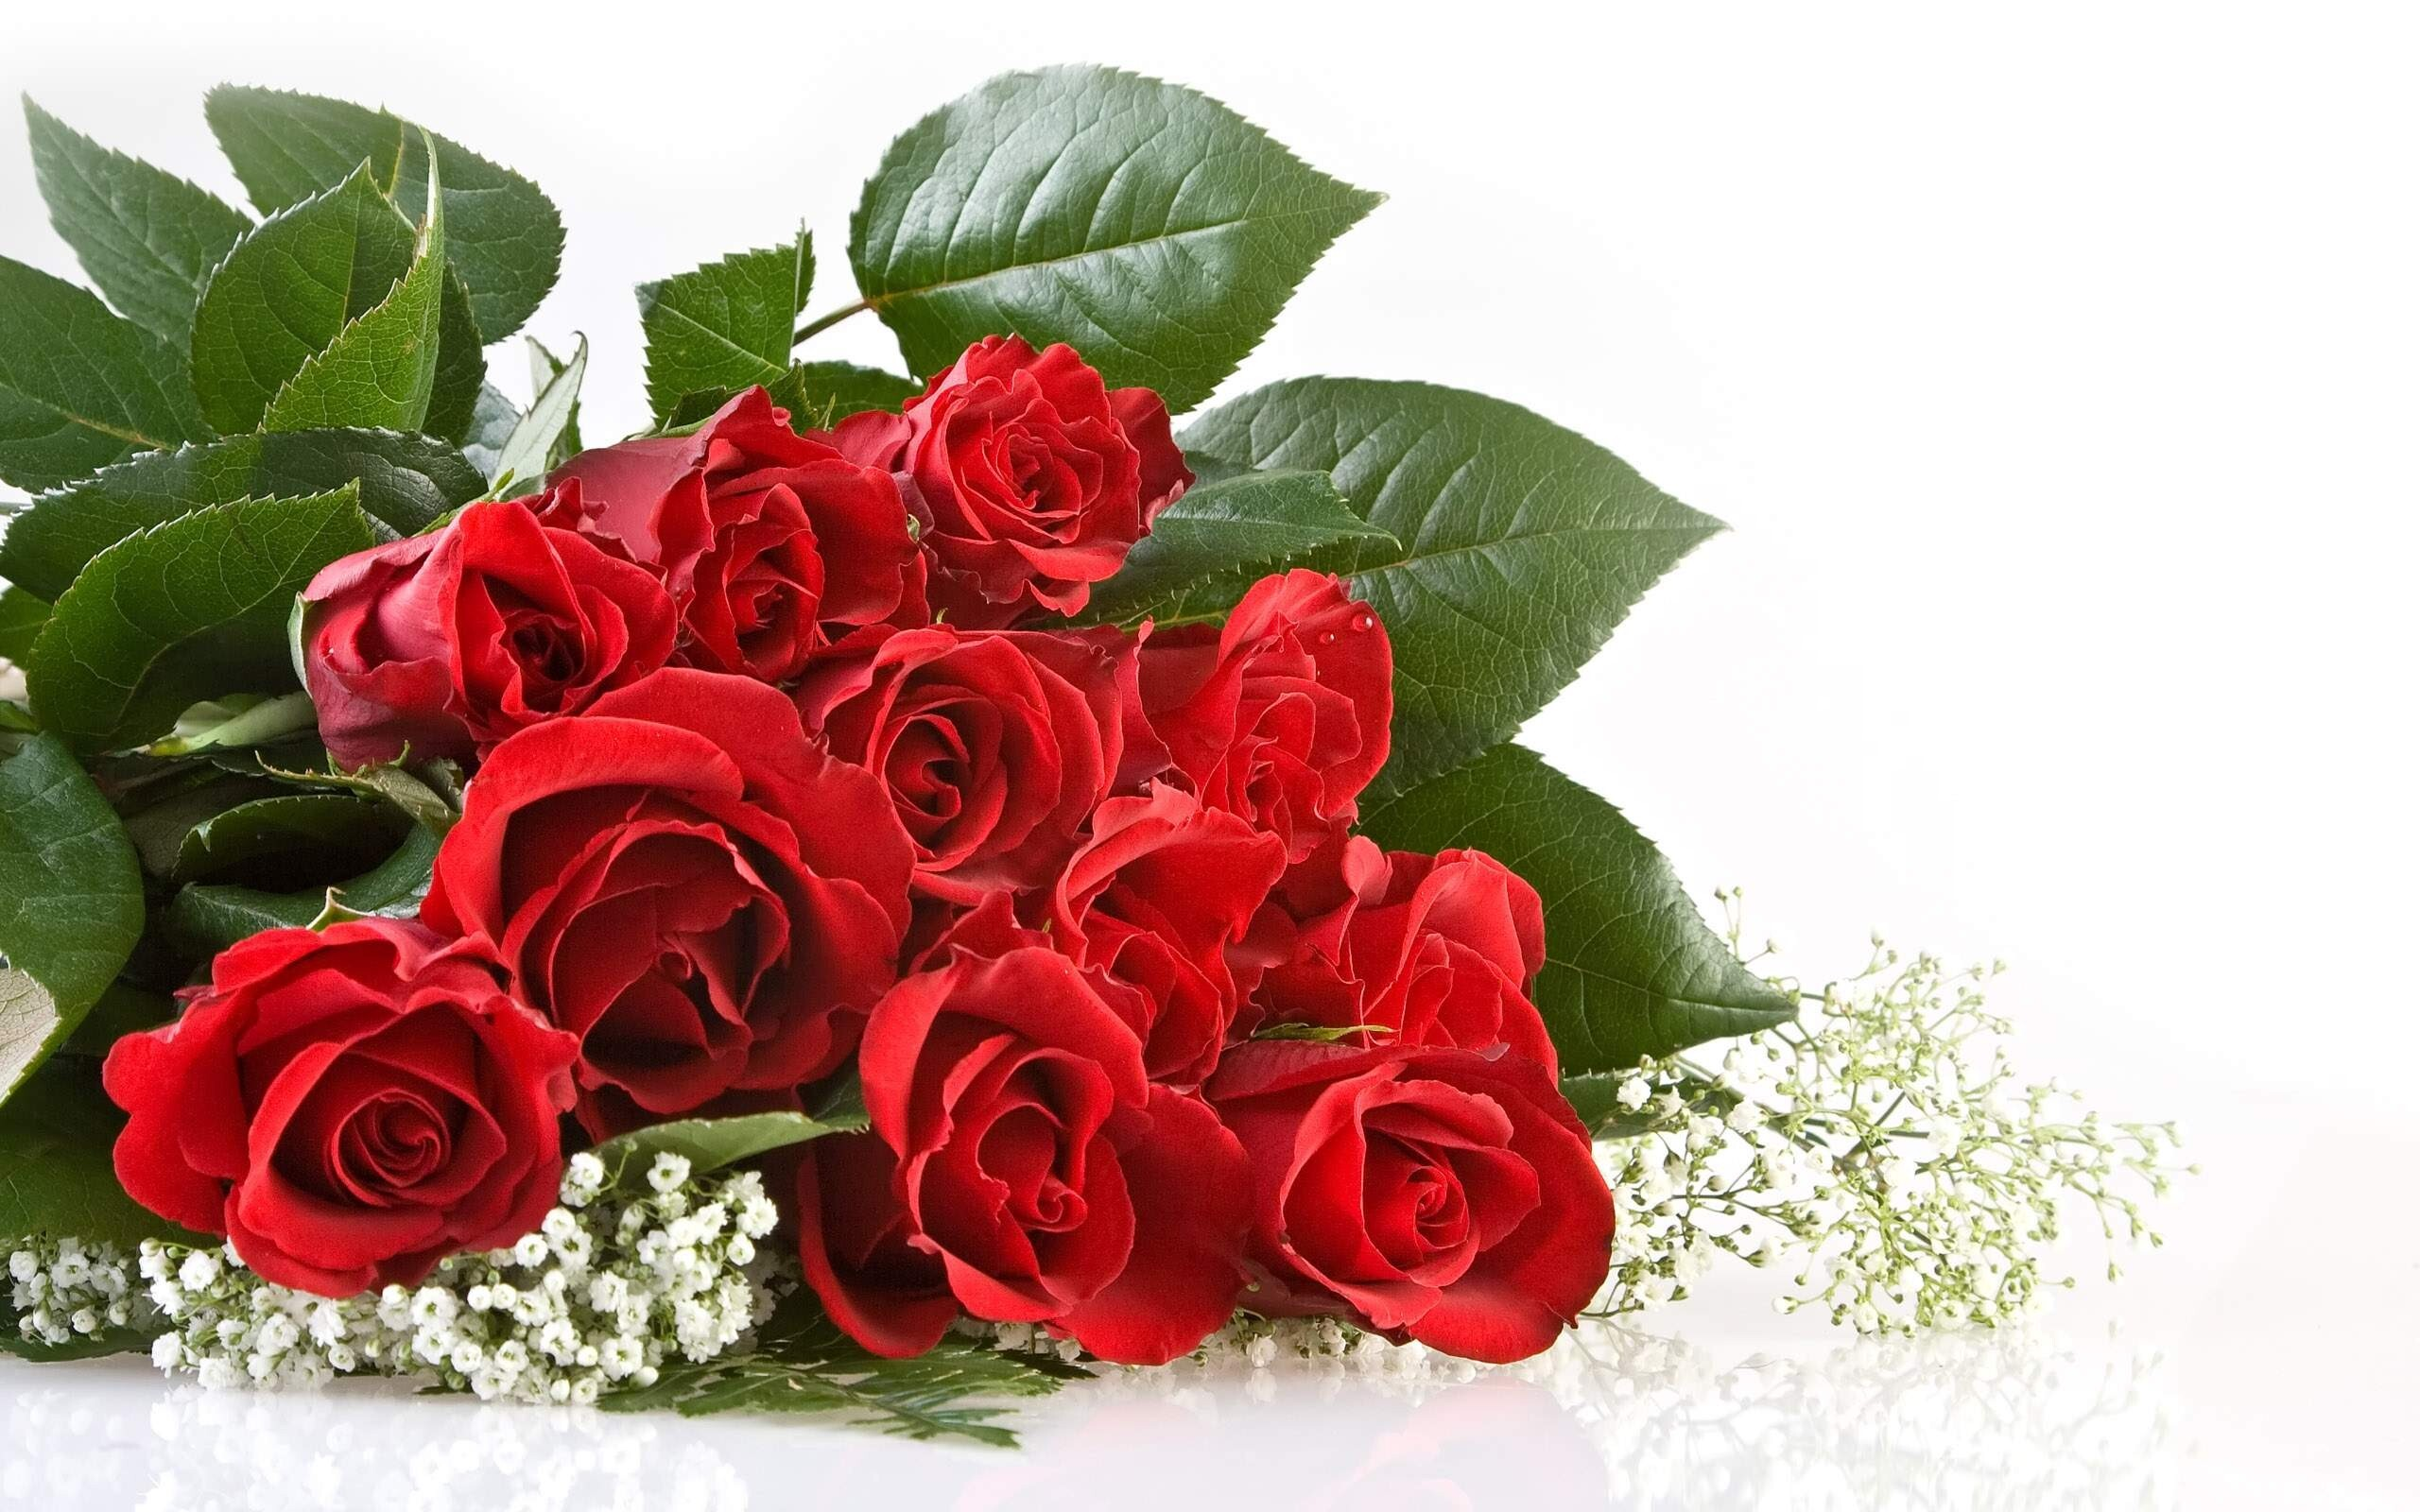 Amazing Unique Wallpaper Of Red Rose Flowers Hd Wallpapers